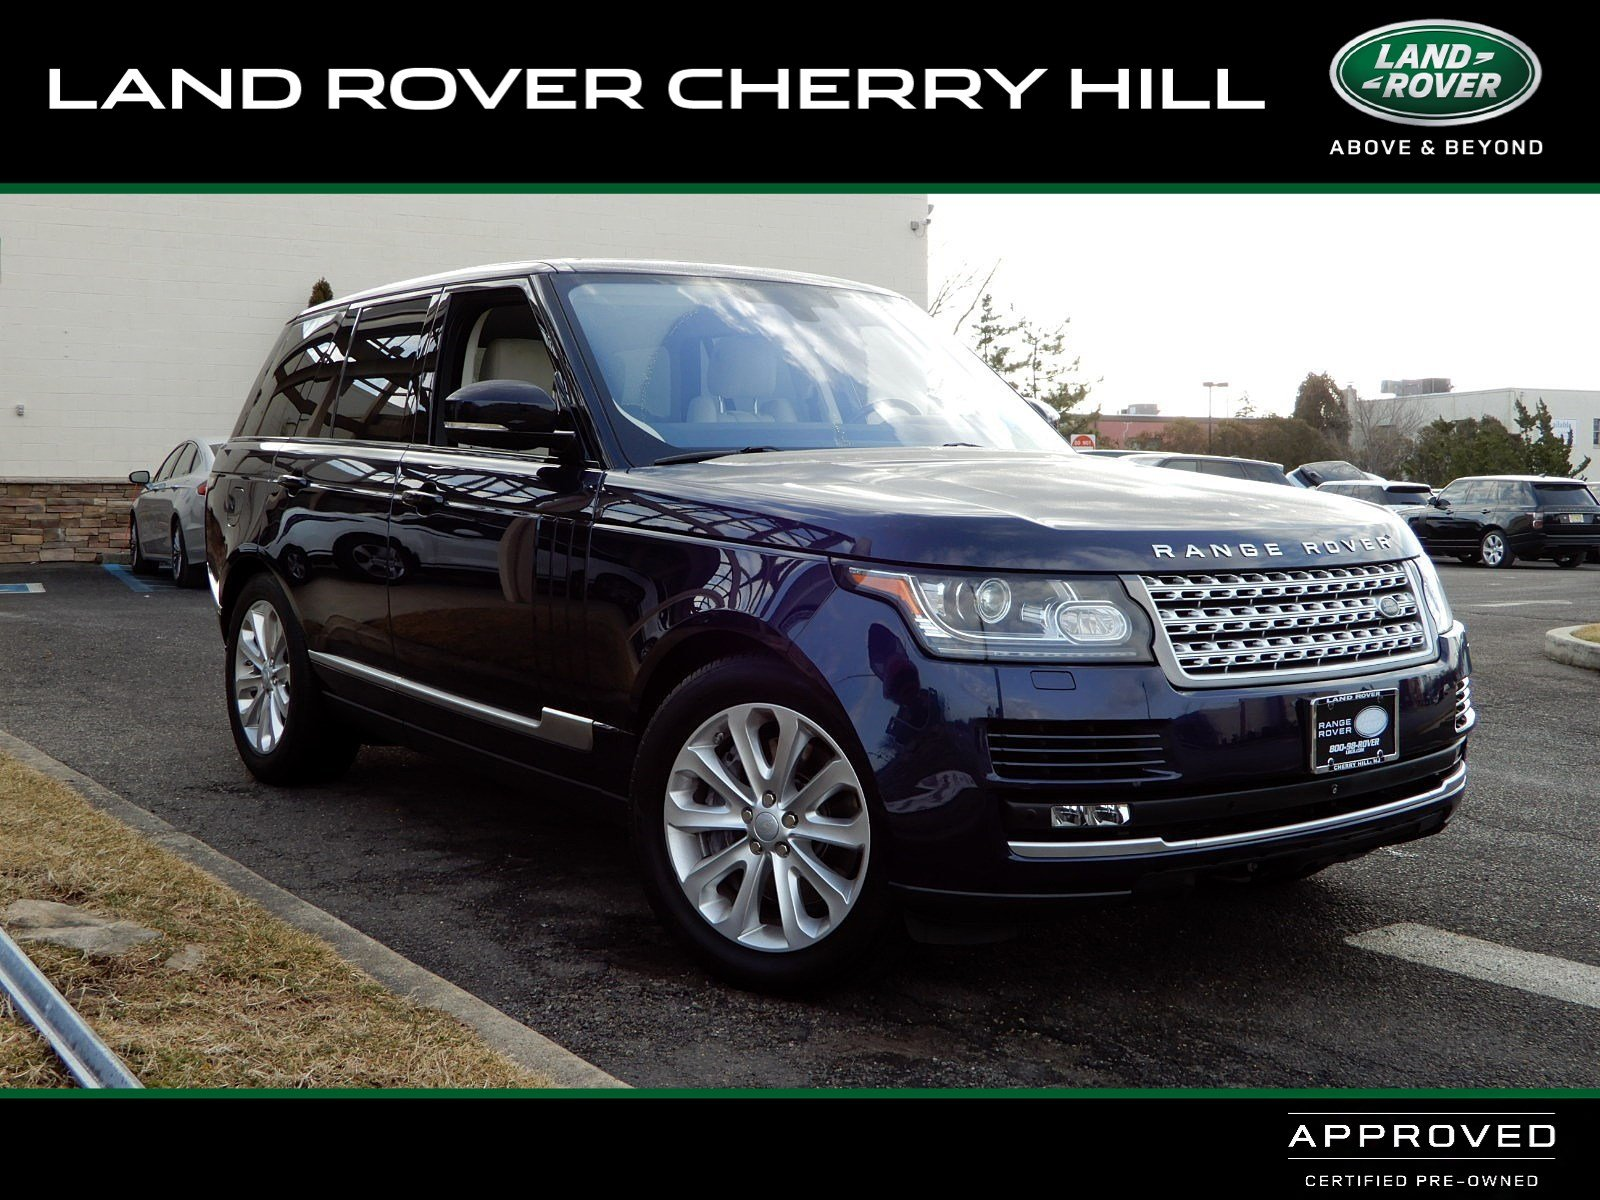 Who Owns Land Rover >> Pre Owned Featured Vehicles Land Rover Cherry Hill